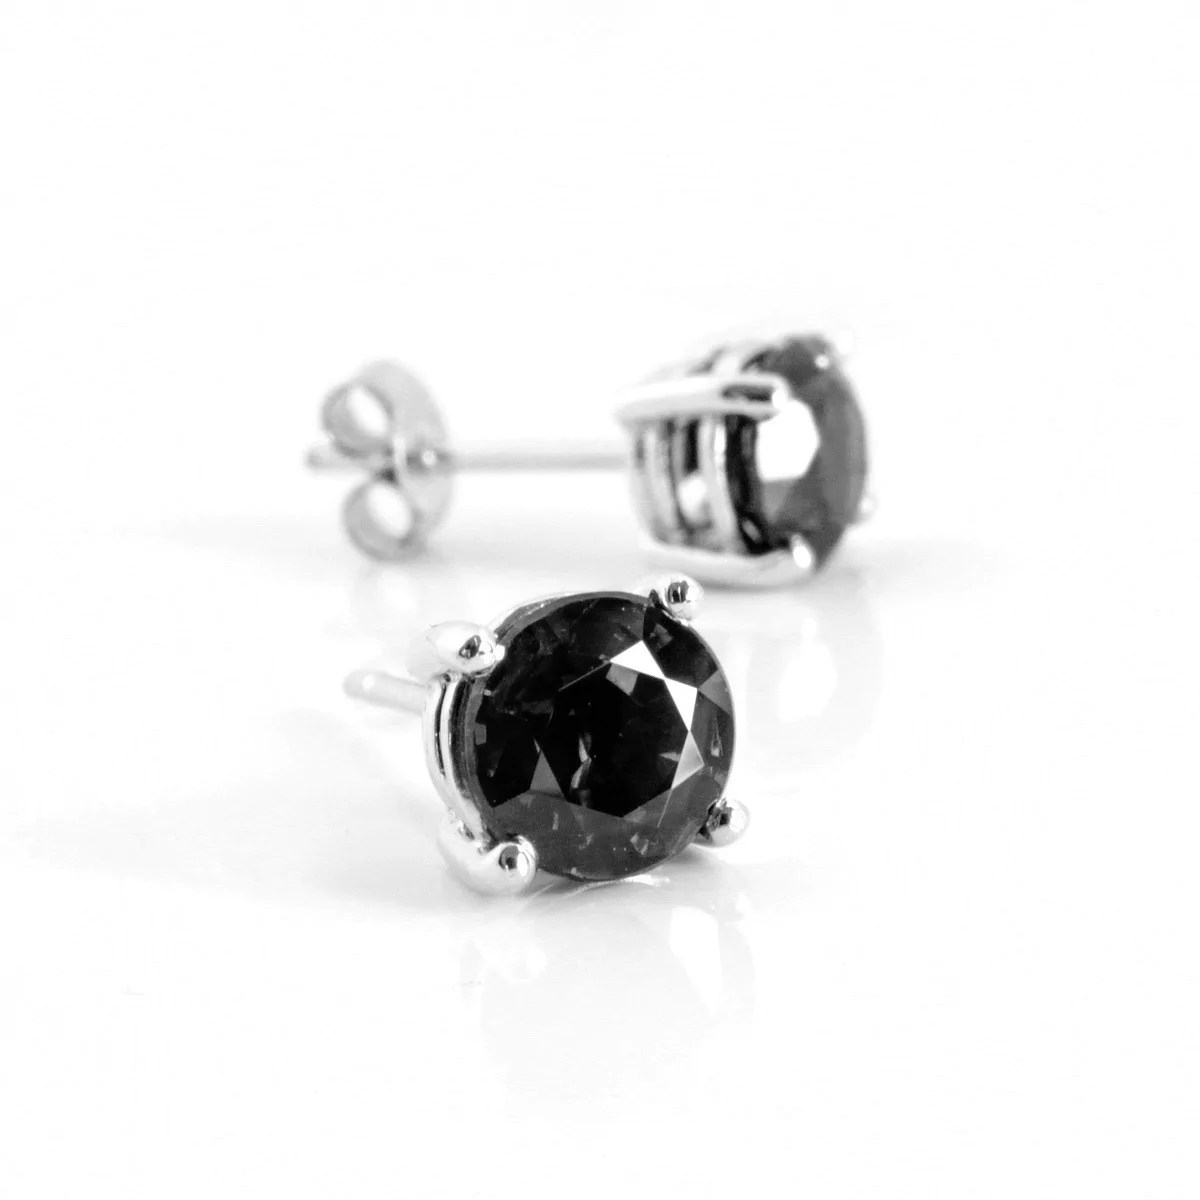 Black Diamond 1 00ct One Carat Black Diamond Studs In Sterling Silver 23 27ct Total Weight